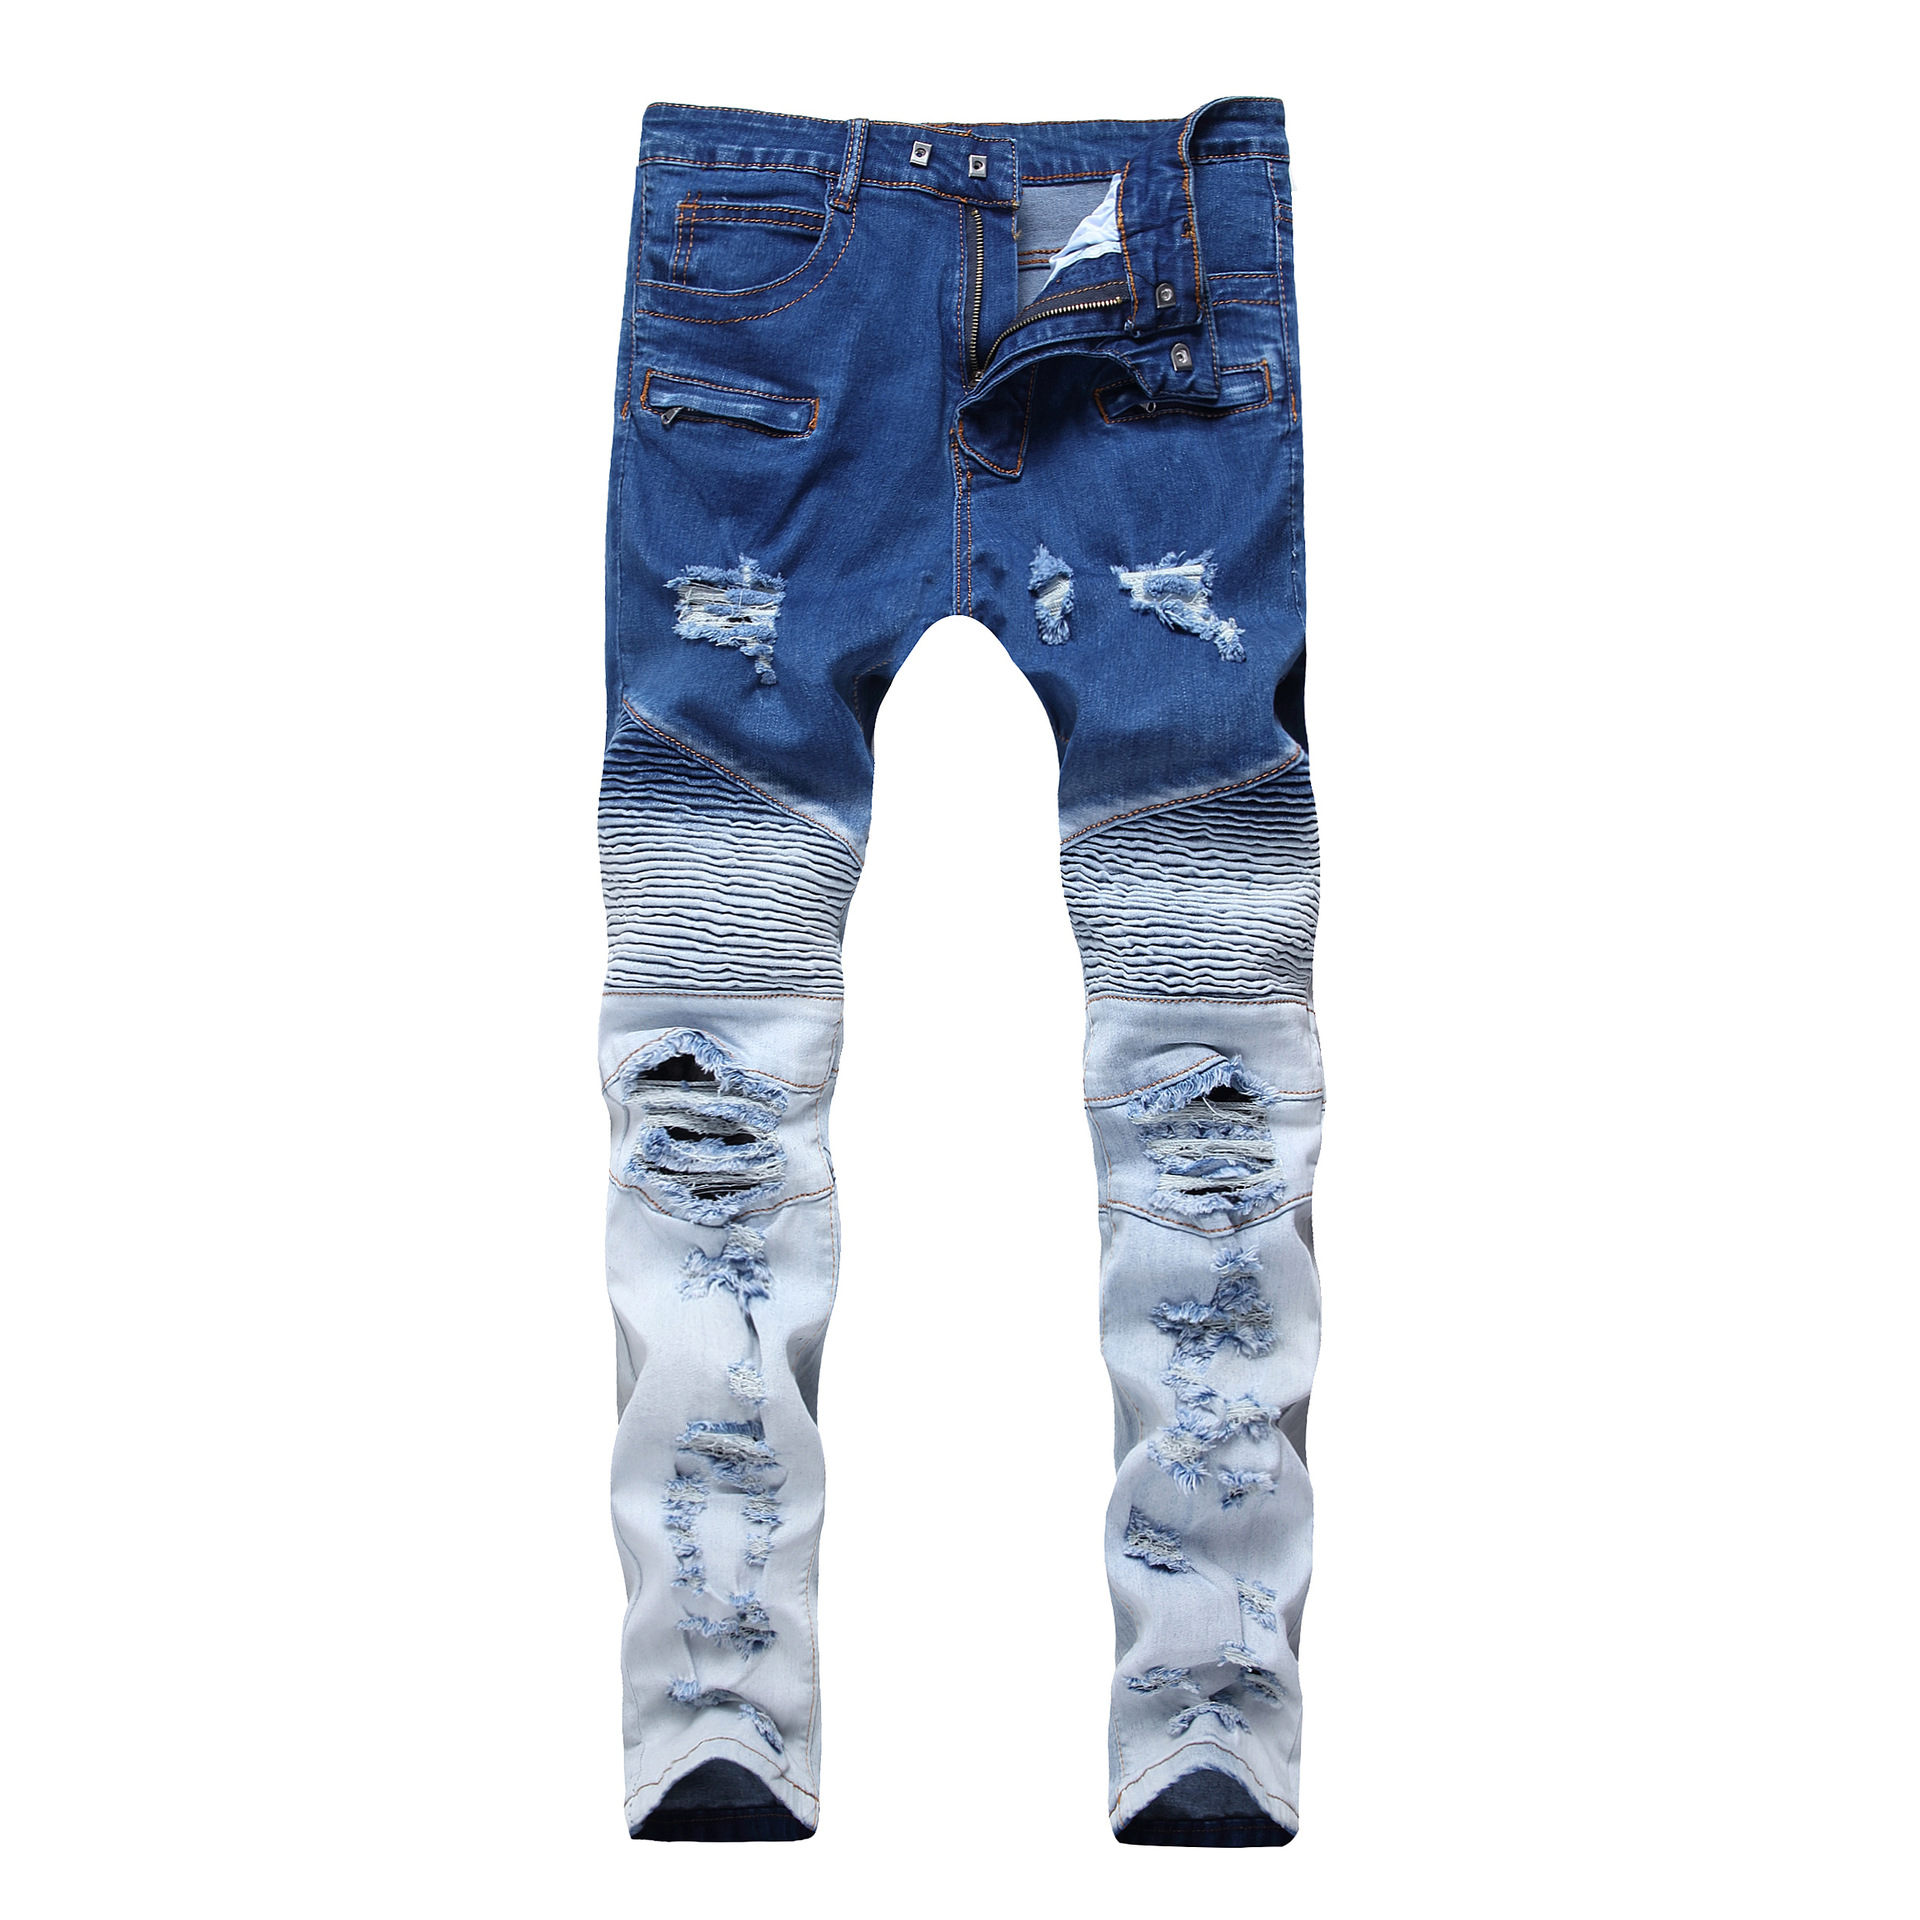 Mens Motorcycle Jeans Zipper Stretch Fashion Hole Trousers Colorblock Ripped Washed Streetwear Skateboard Straight Pants